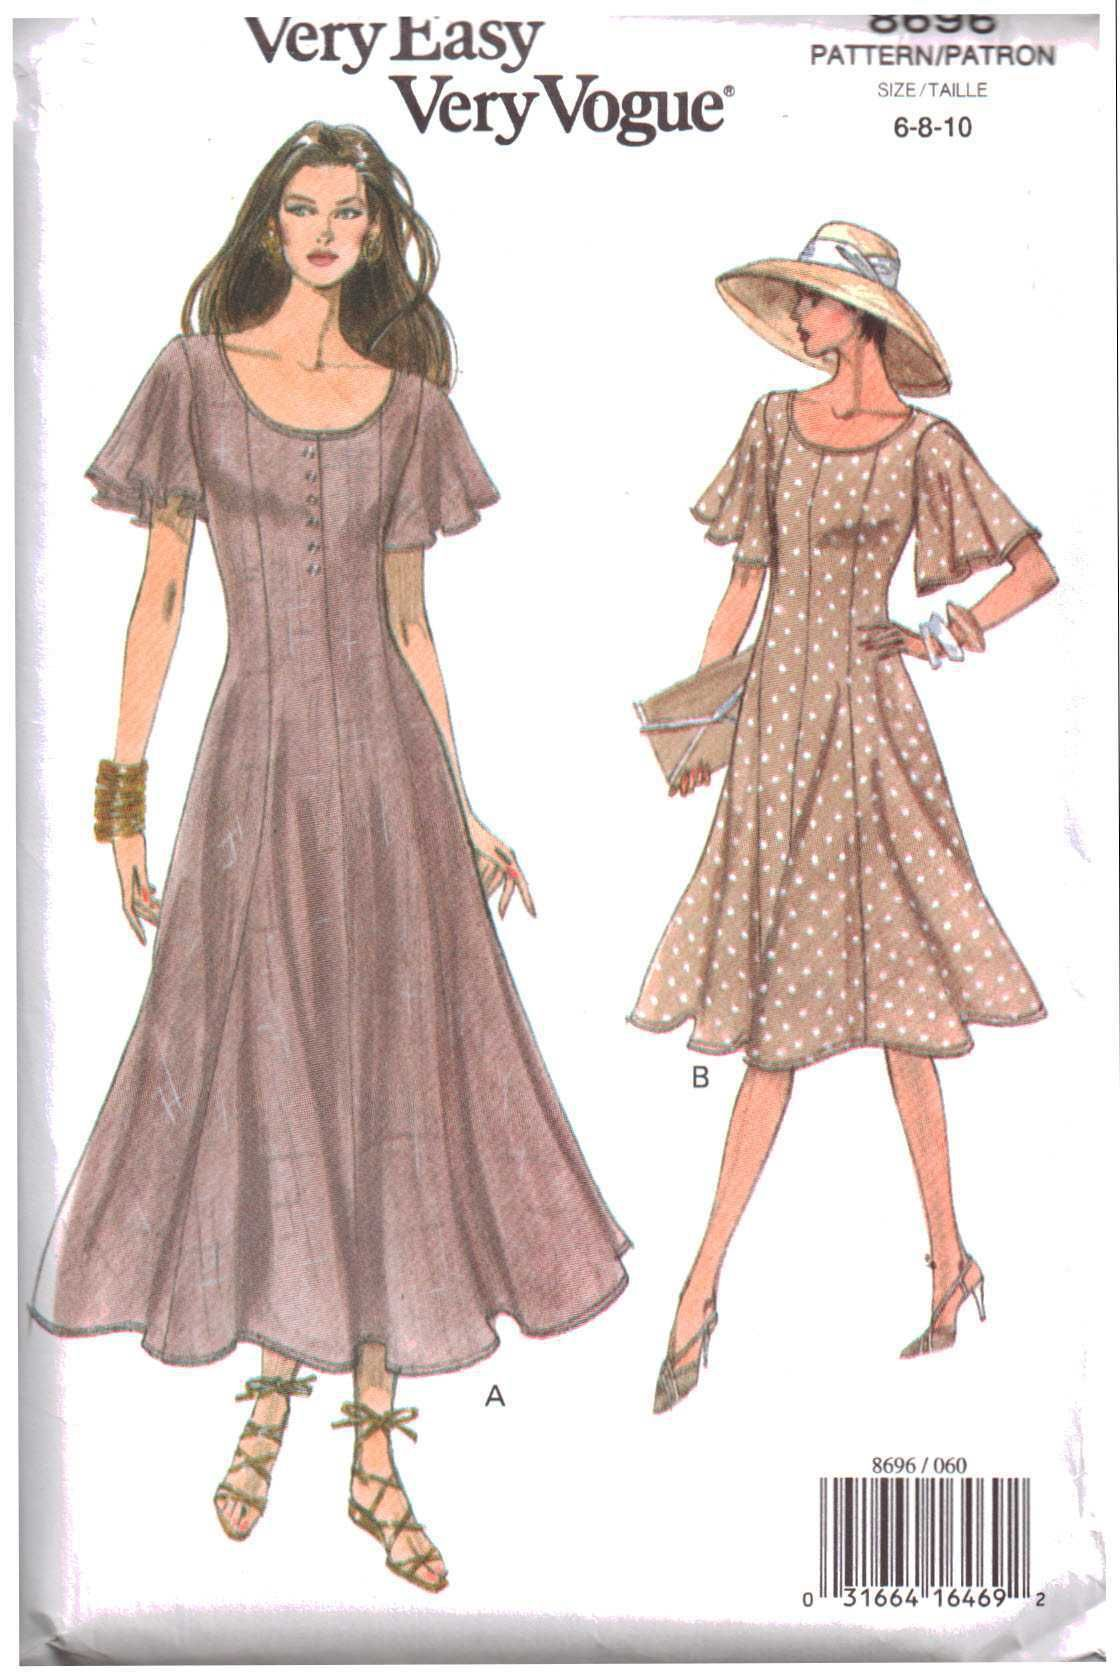 16 dress Patterns princess ideas